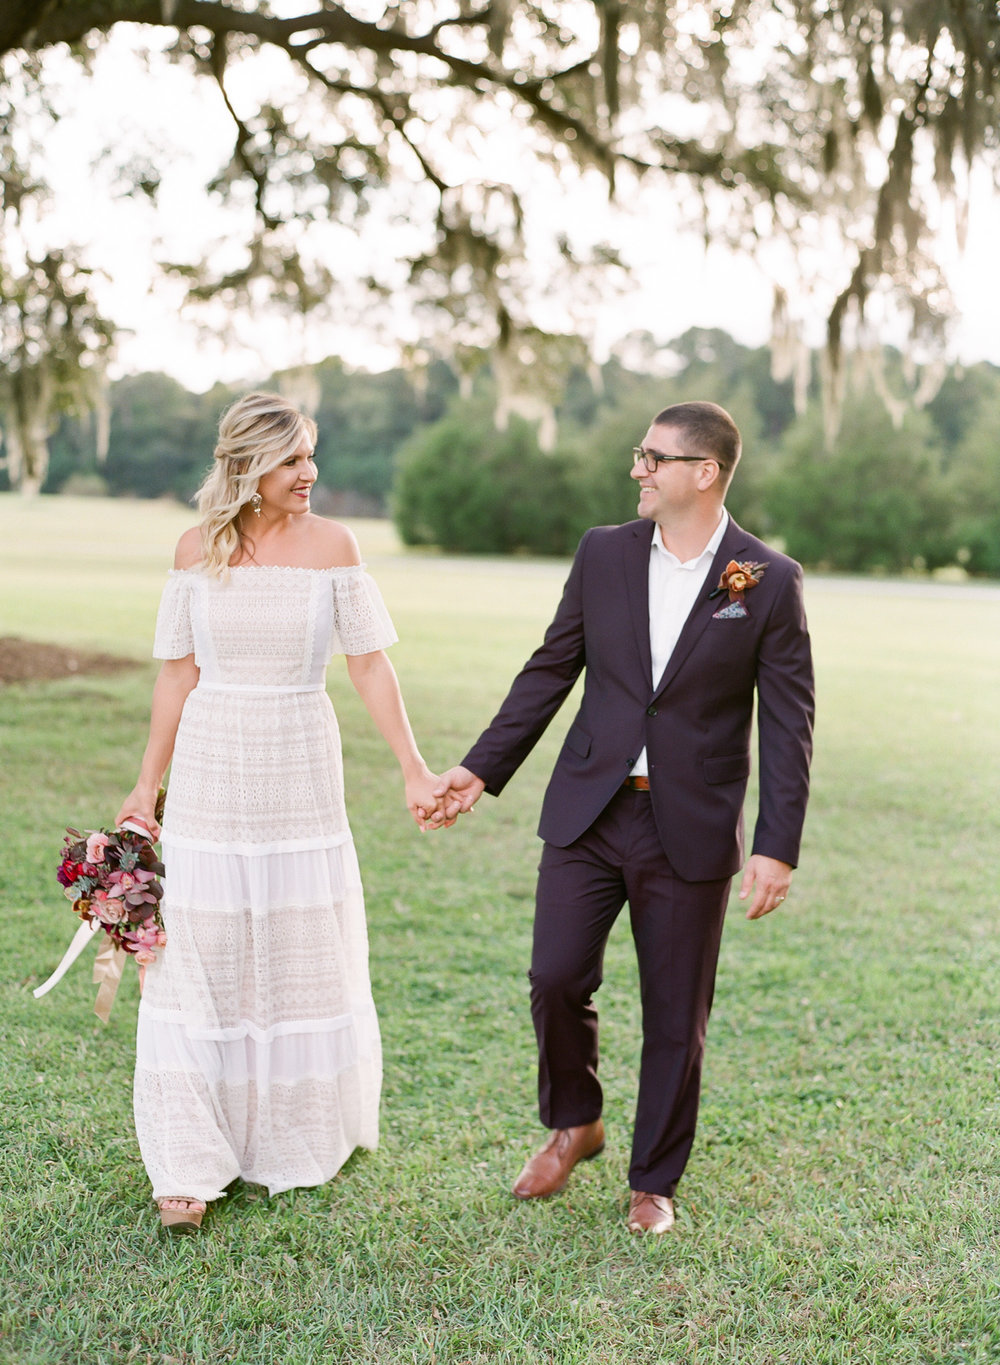 Charleston-Wedding-Wingate-Plantation-31.jpg